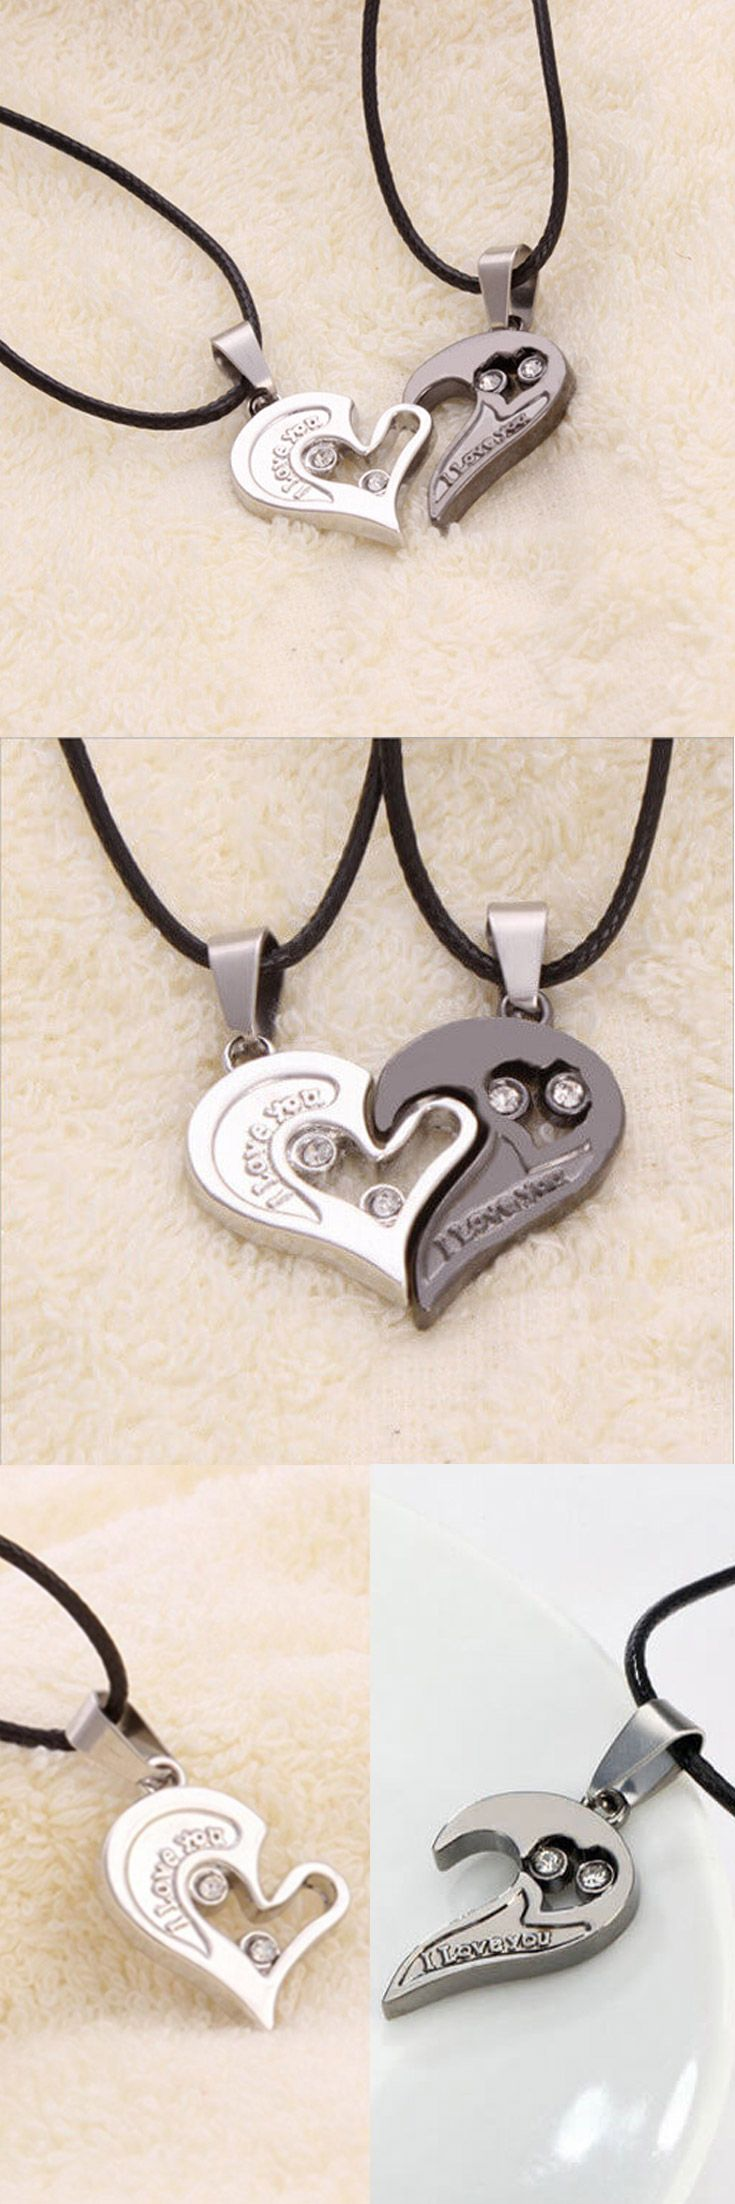 470a196c2d Are you in love? Show your love with this Lover Couples Necklace, I love  you heart pendant. Grab yours now at 50% off